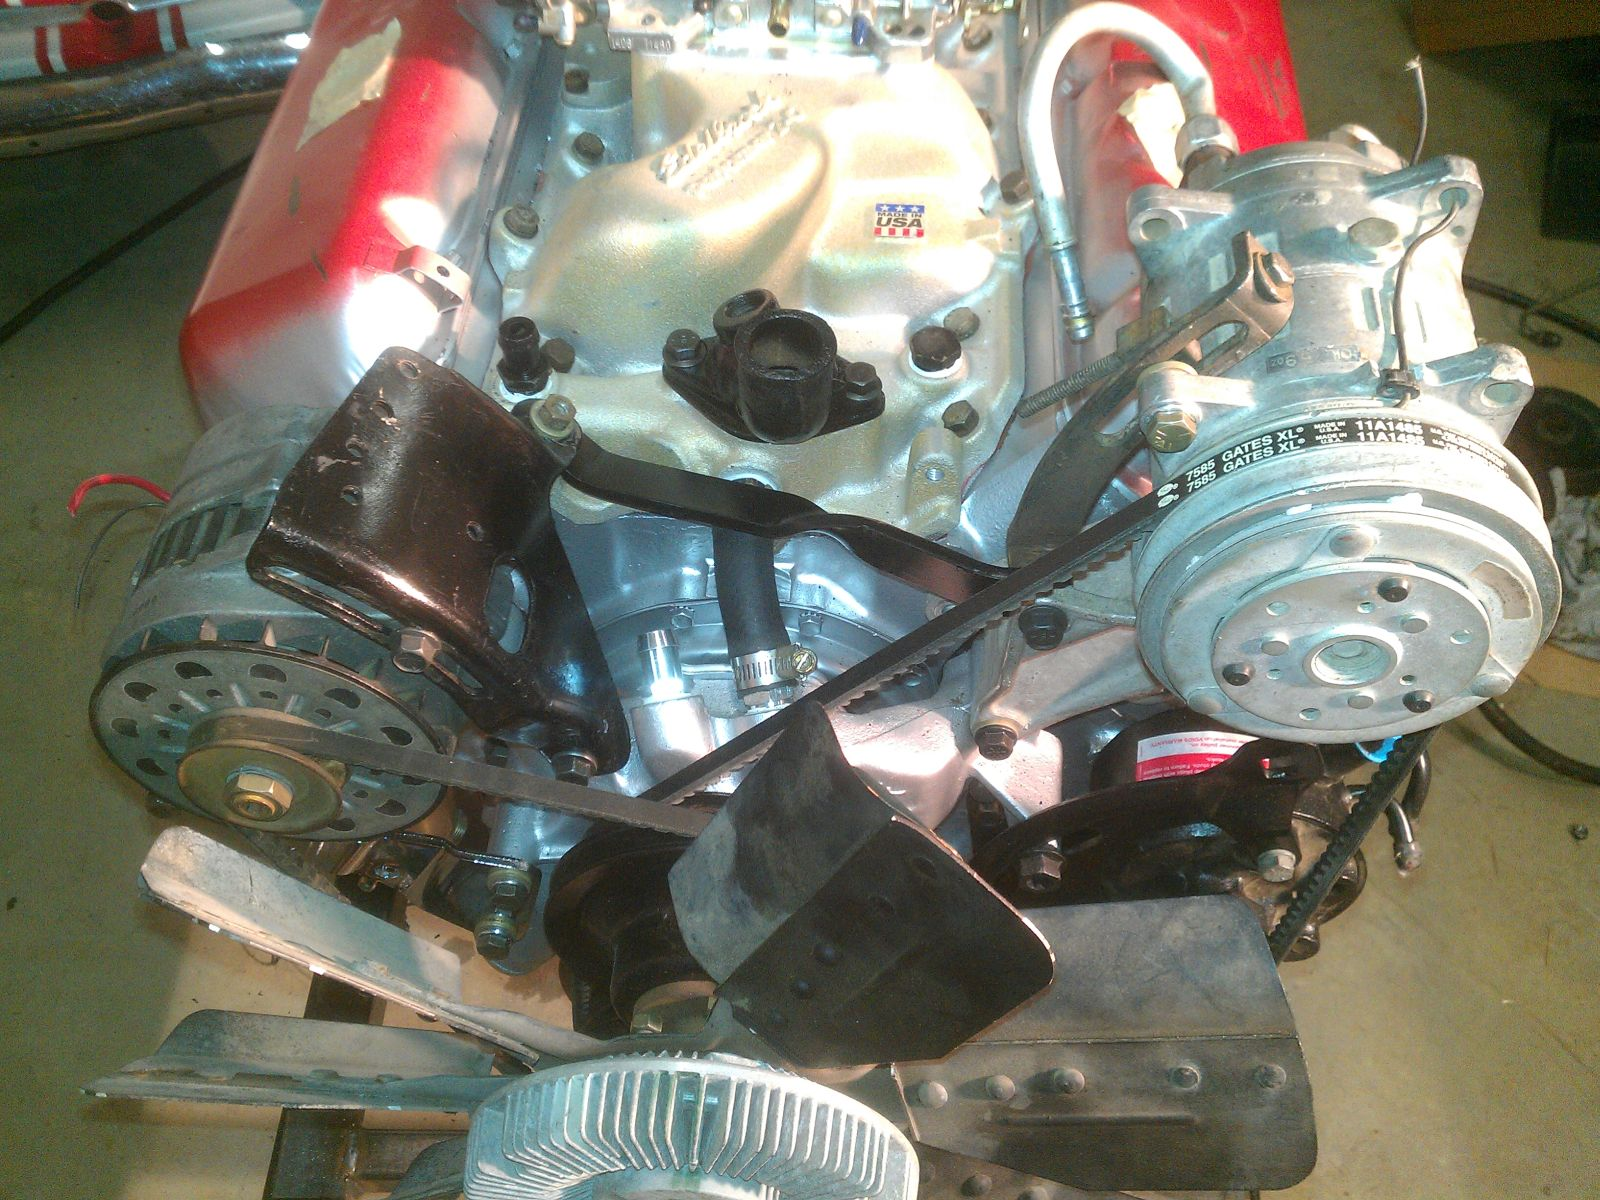 Click image for larger version  Name:74-argosy-engine-front-ac-alt.jpg Views:101 Size:391.2 KB ID:178176